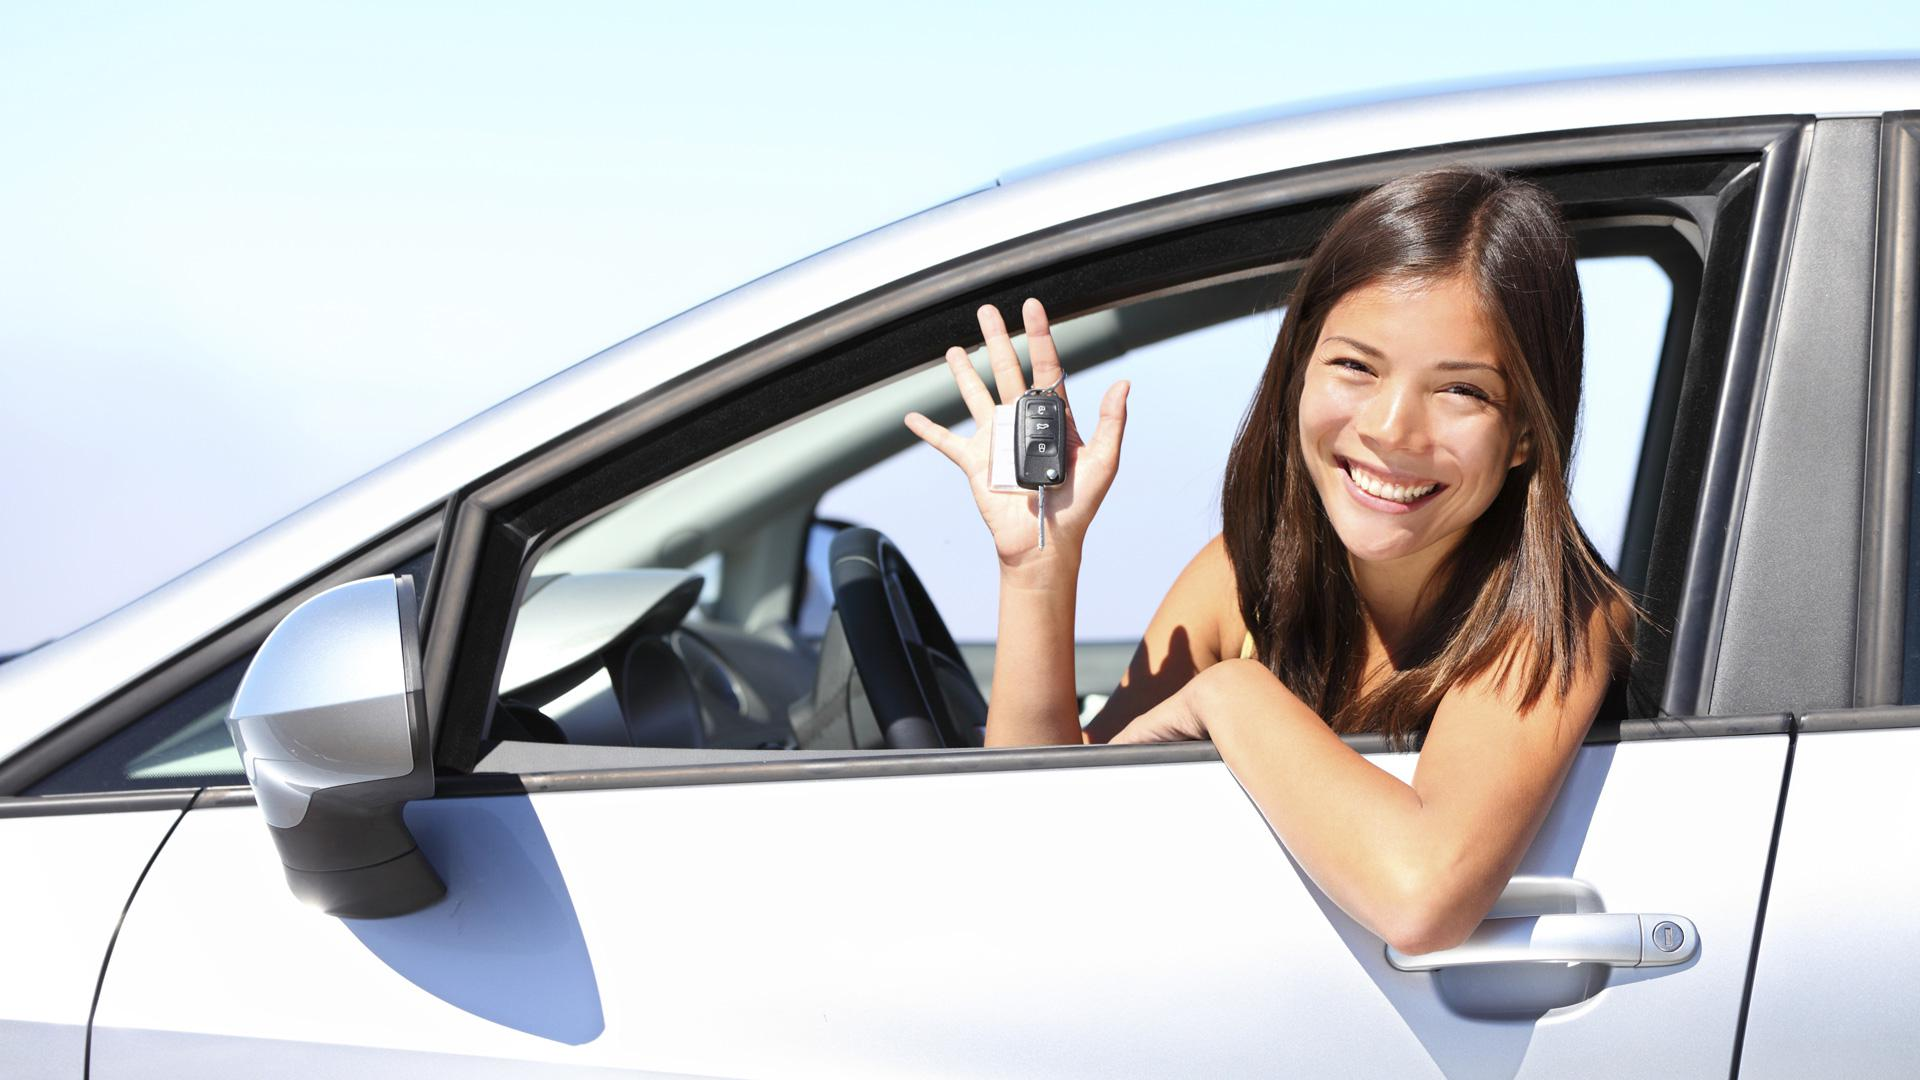 Road Trip Should You Rent A Car Or Drive Your Own Sheknows